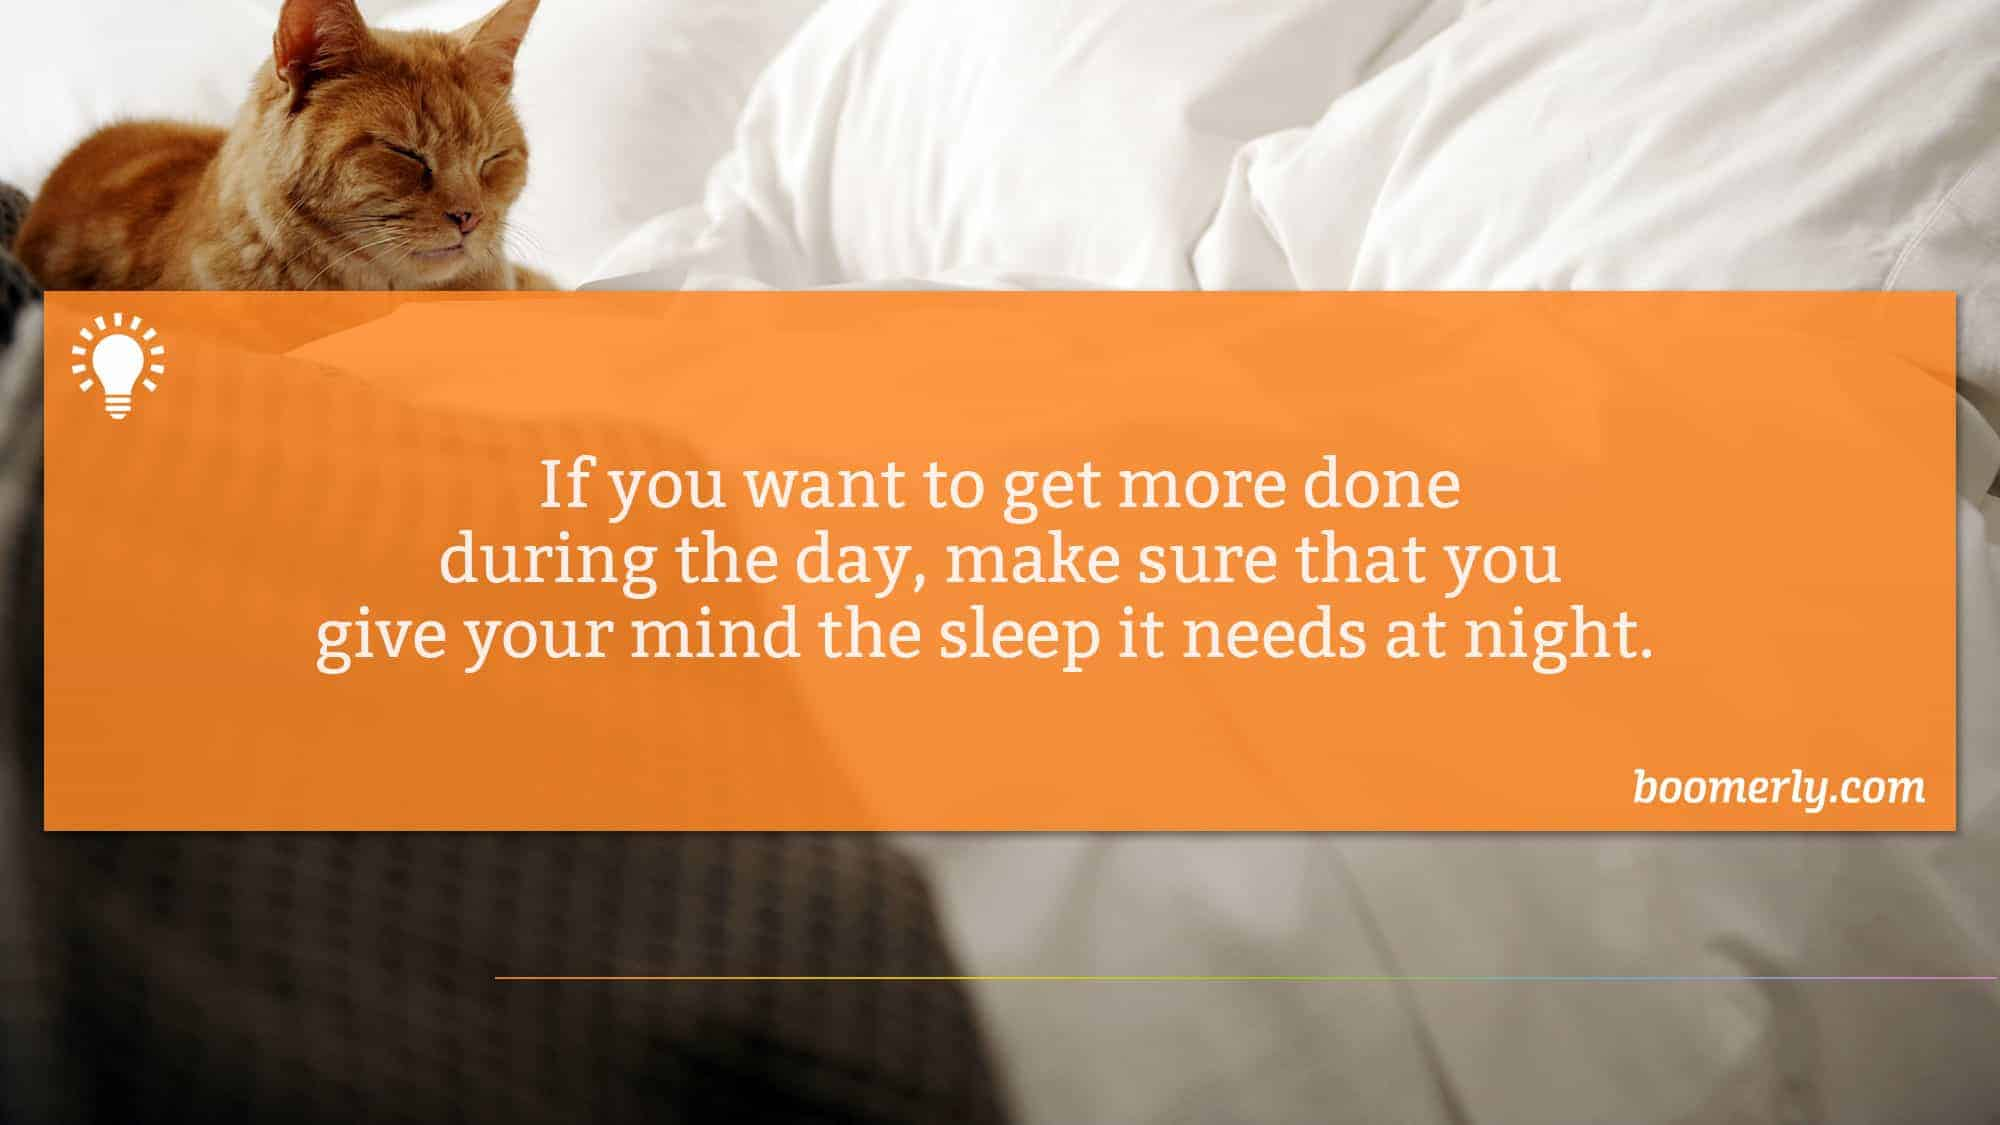 If you want to get more done during the day, make sure that you give your mind the sleep it needs at night.